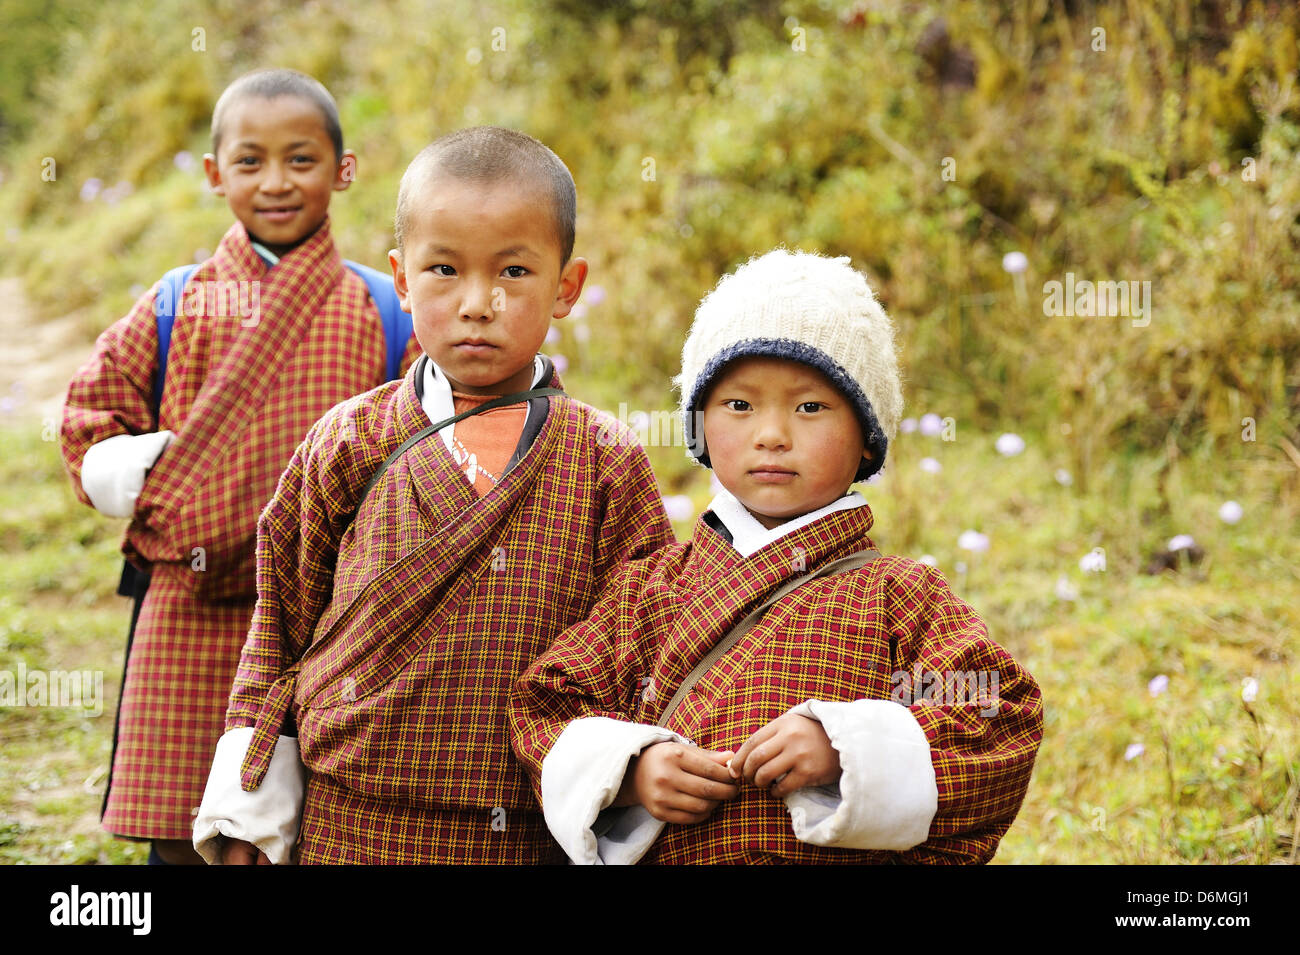 Students in Bhutan - children in Bhutan - Stock Image